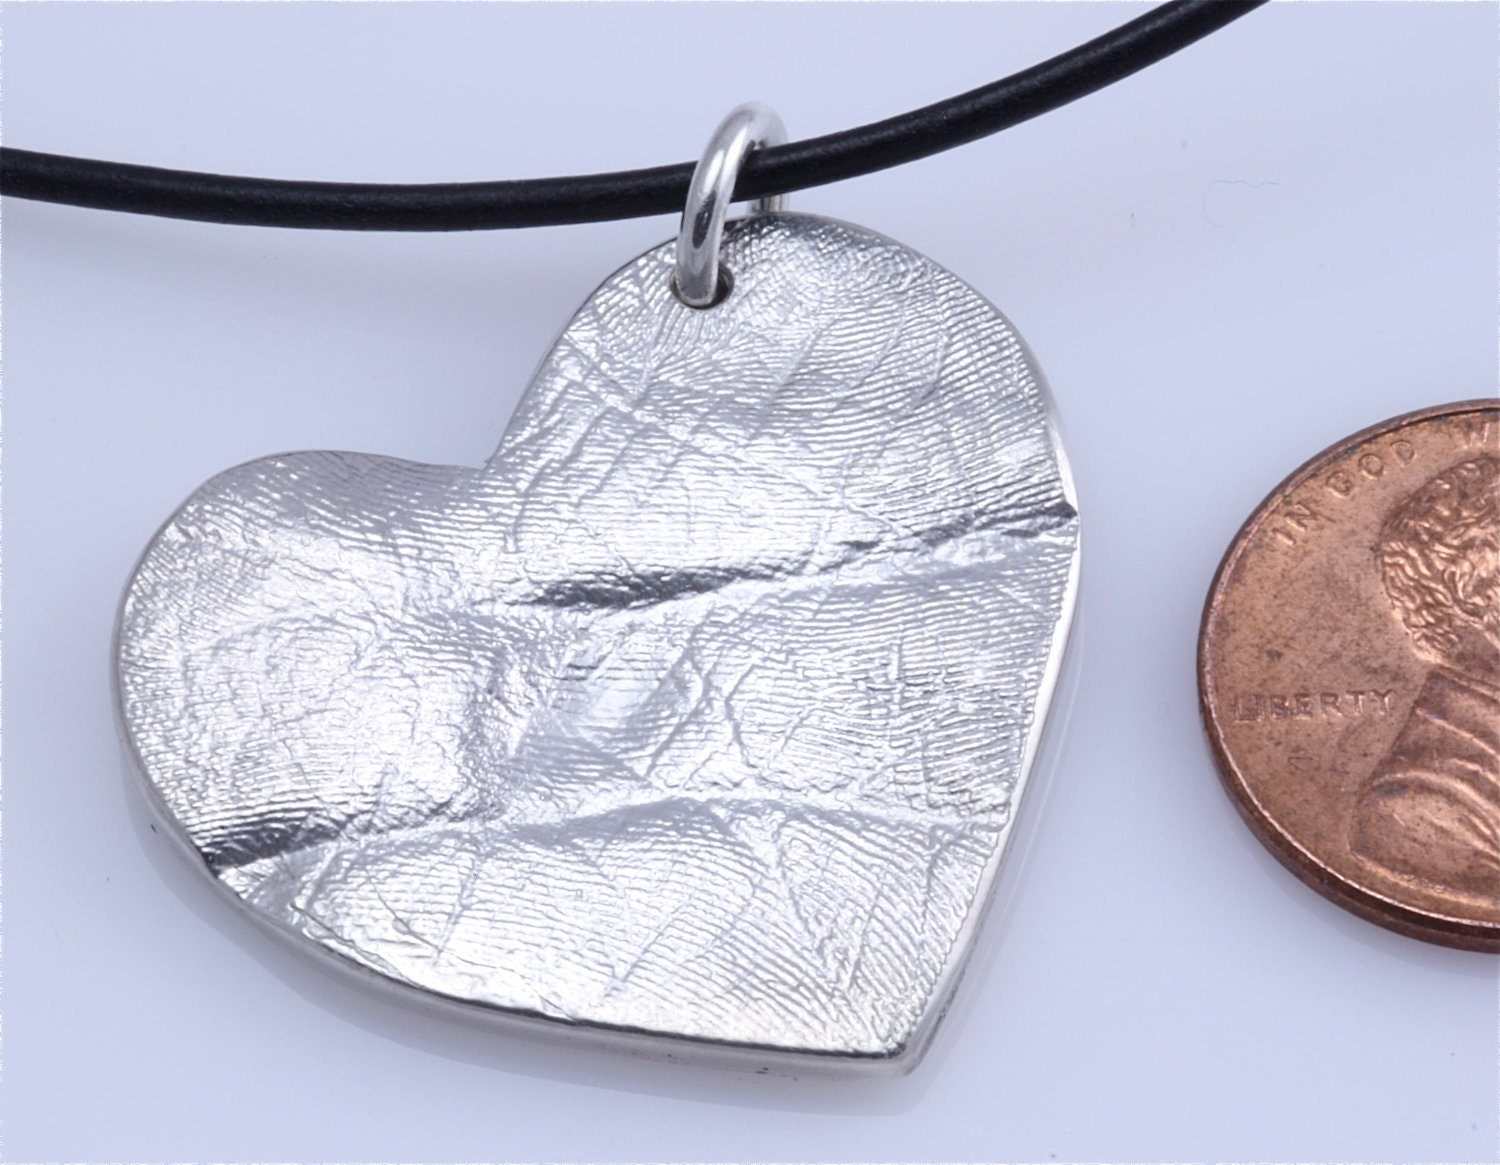 Custom Child's Palm or Foot texture Heart Pendant made from sterling silver